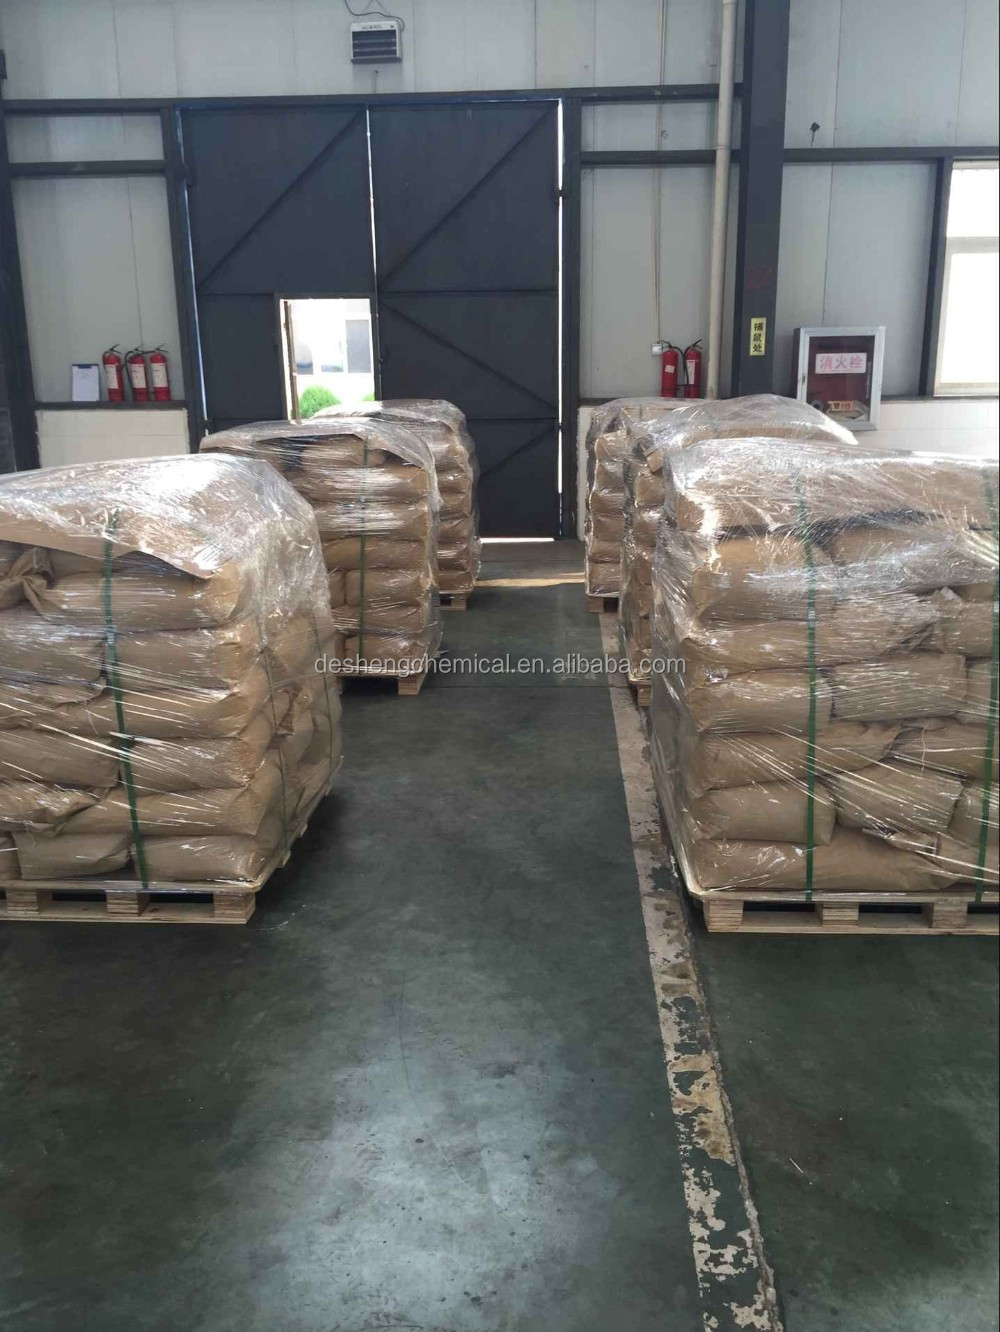 L-Aspartic acid with Amino acid cas no.56-84-8 HIGH purity 99.4%min